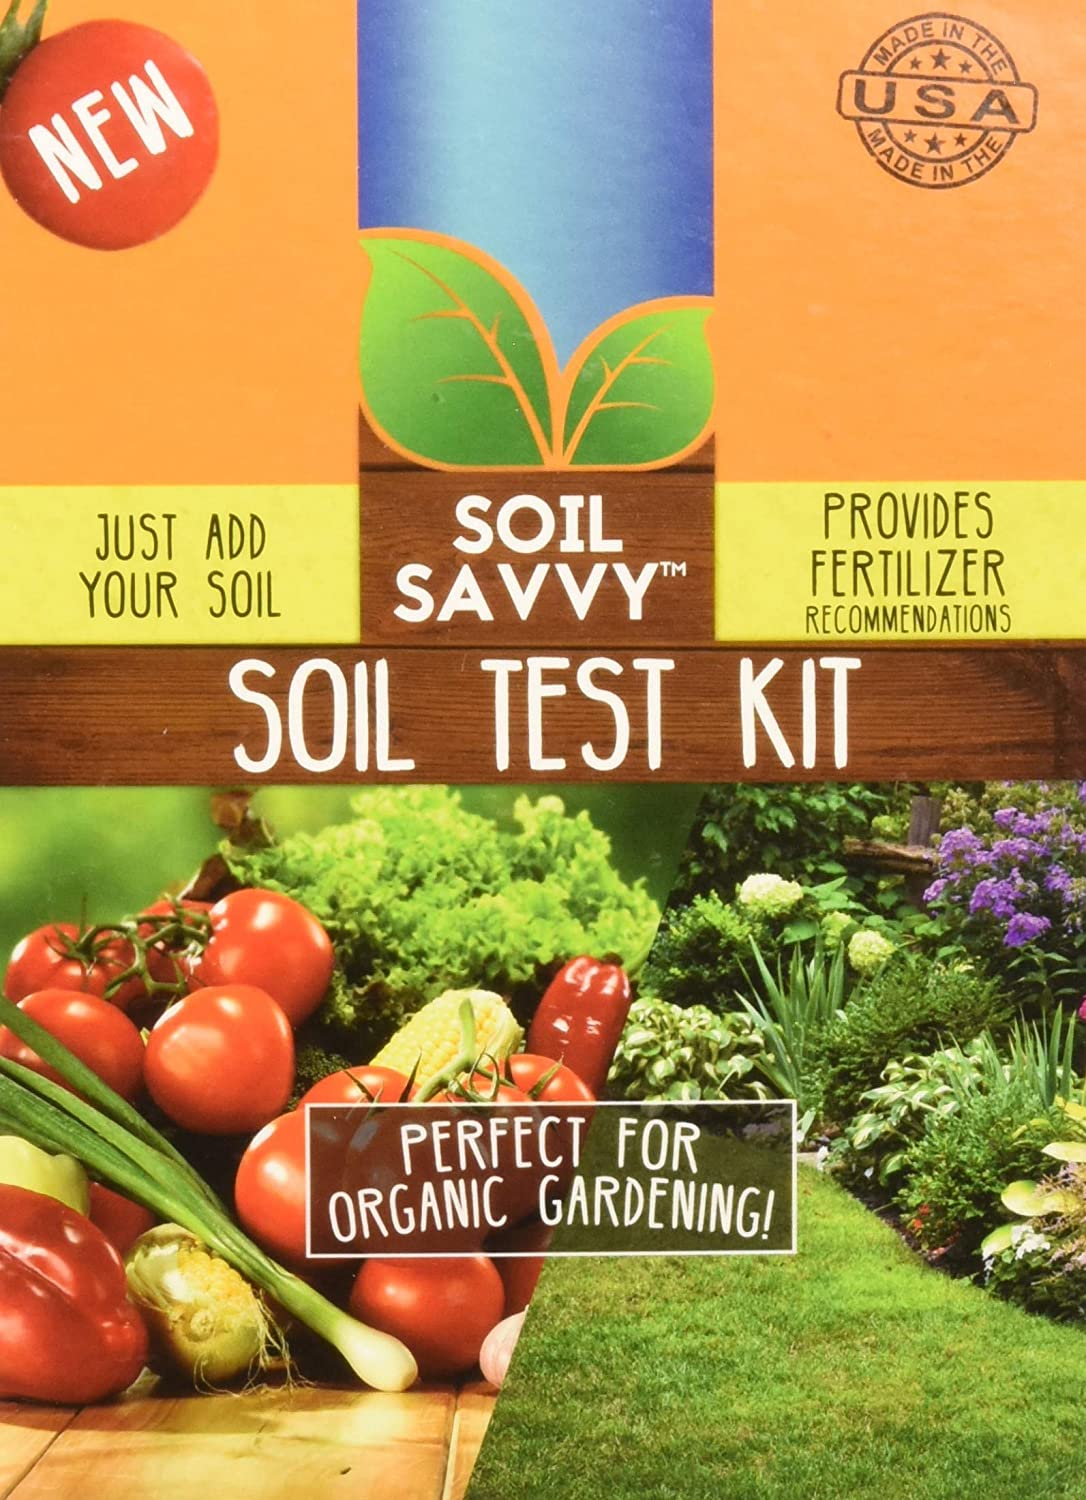 Soil Savvy - Soil Test Kit | Understand What Your Lawn or Garden Soil Needs - Pack of 4